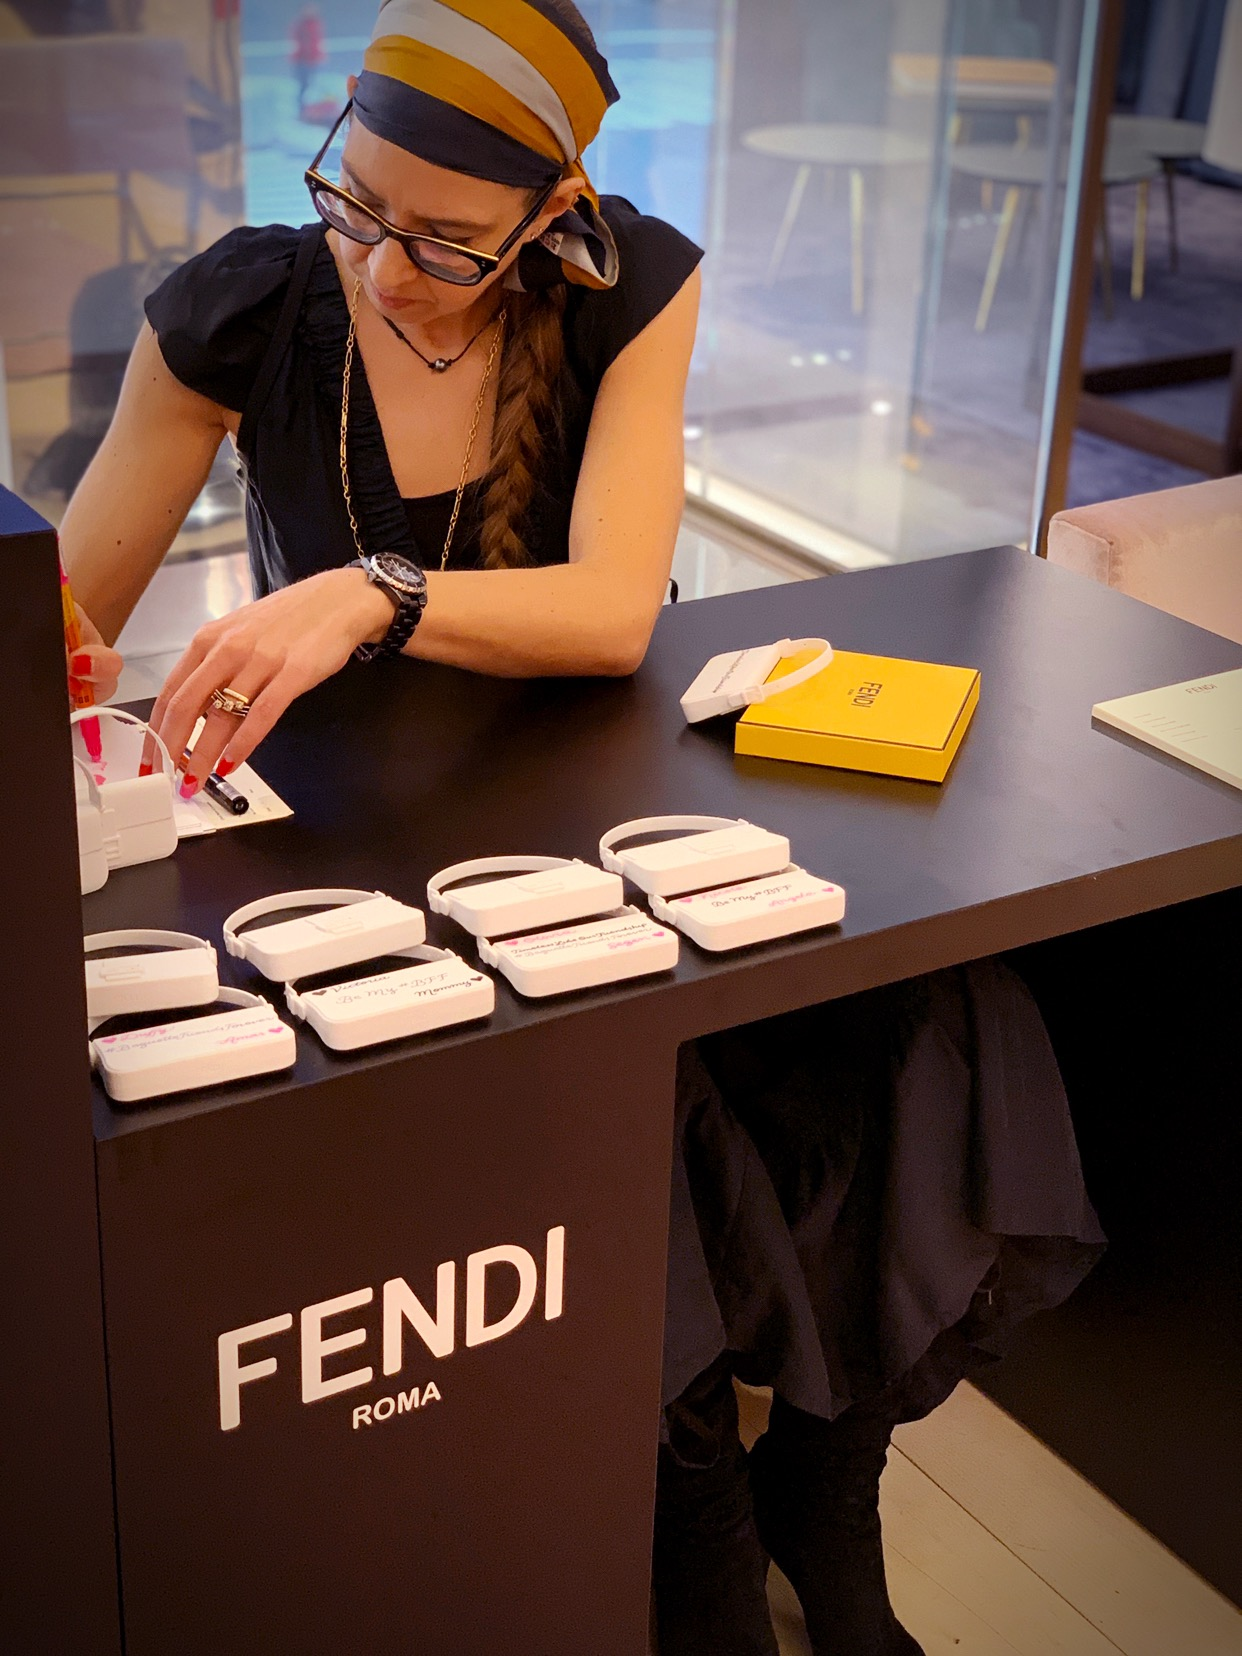 Fendi Micro Baguette Activation - On-Site Calligraphy, Fendi Madison Ave.